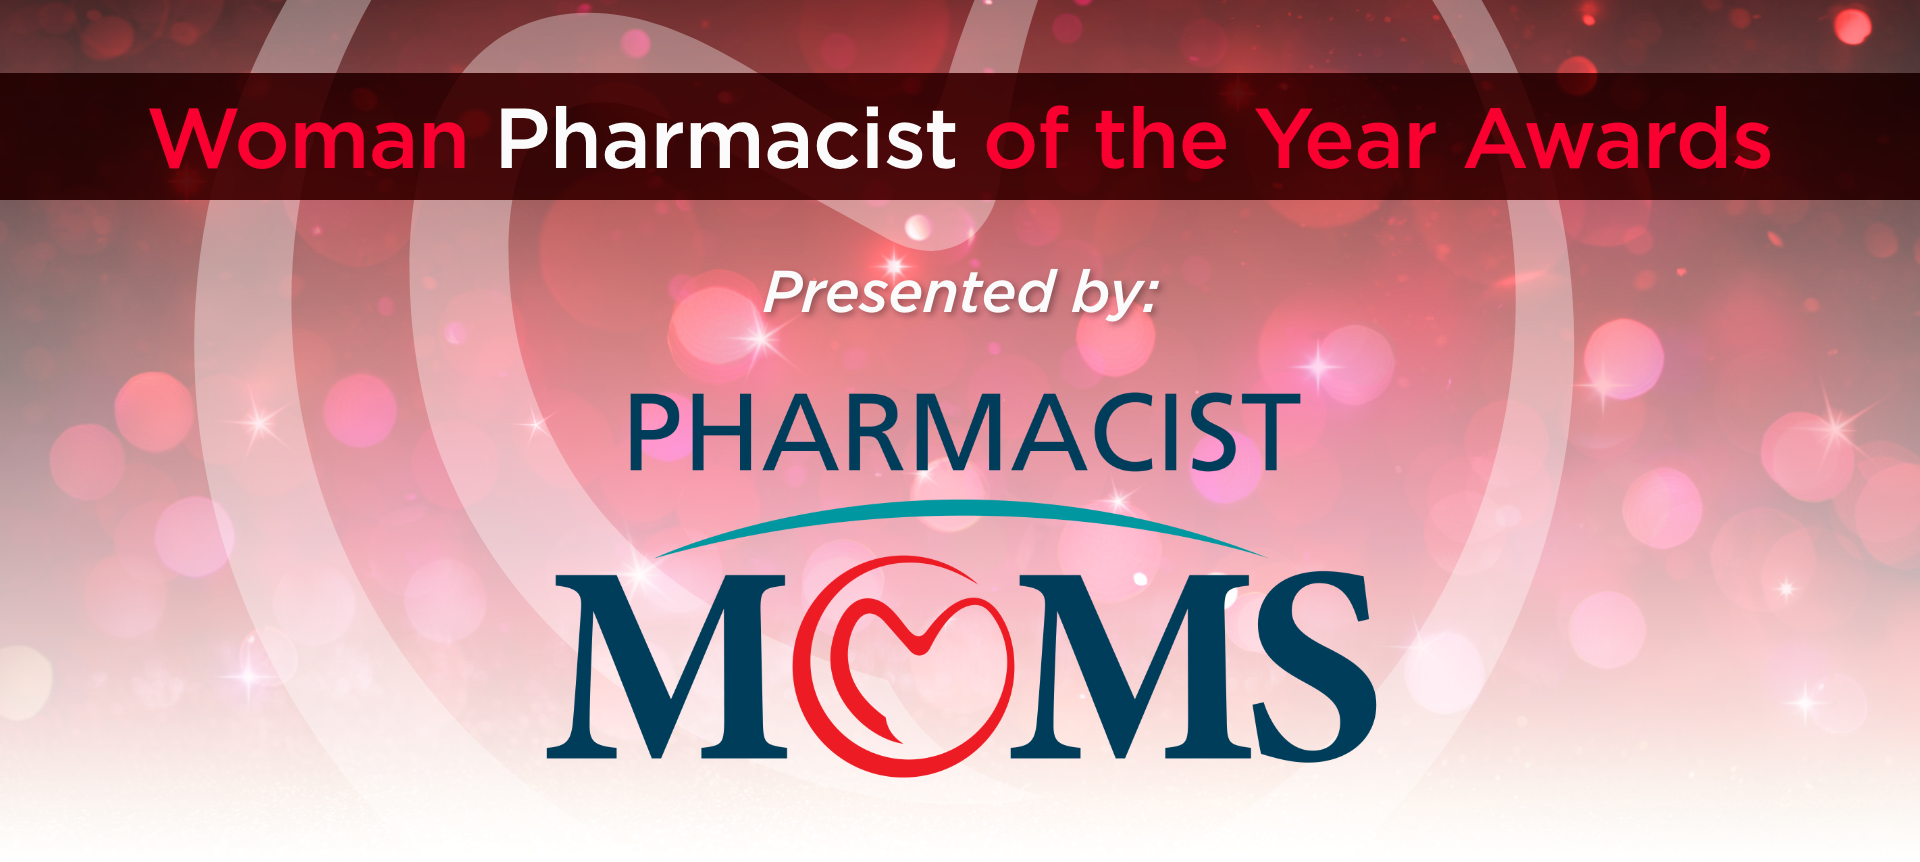 Women Pharmacist Day of the Year Awards presented by Pharmacist Moms